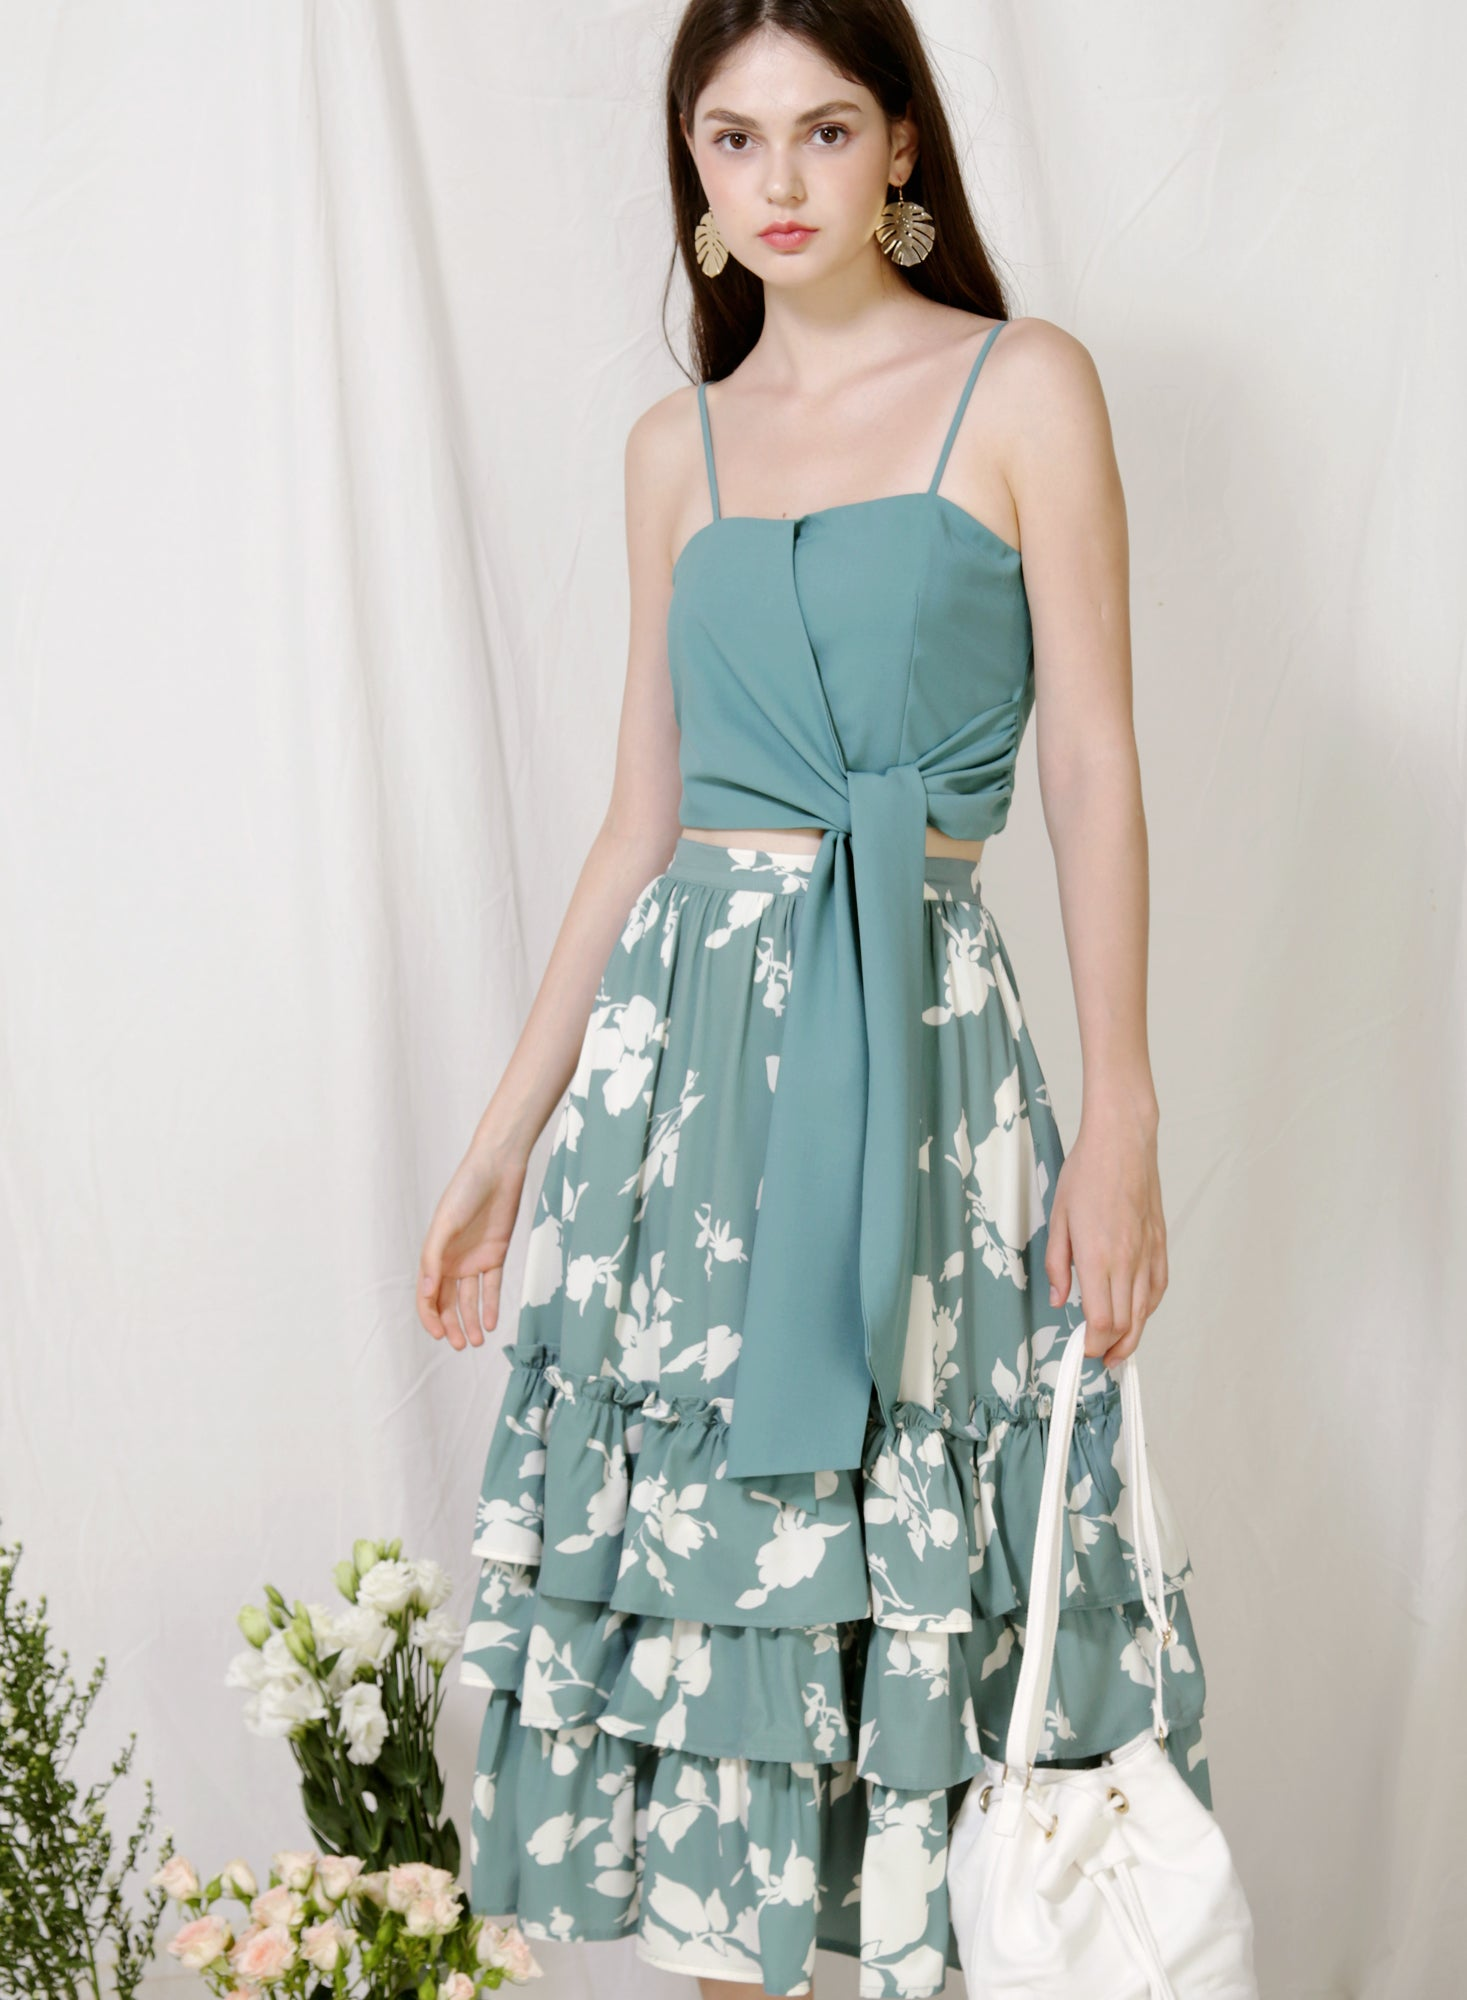 Moda Tie Front Top (Teal) at $ 36.00 only sold at And Well Dressed Online Fashion Store Singapore